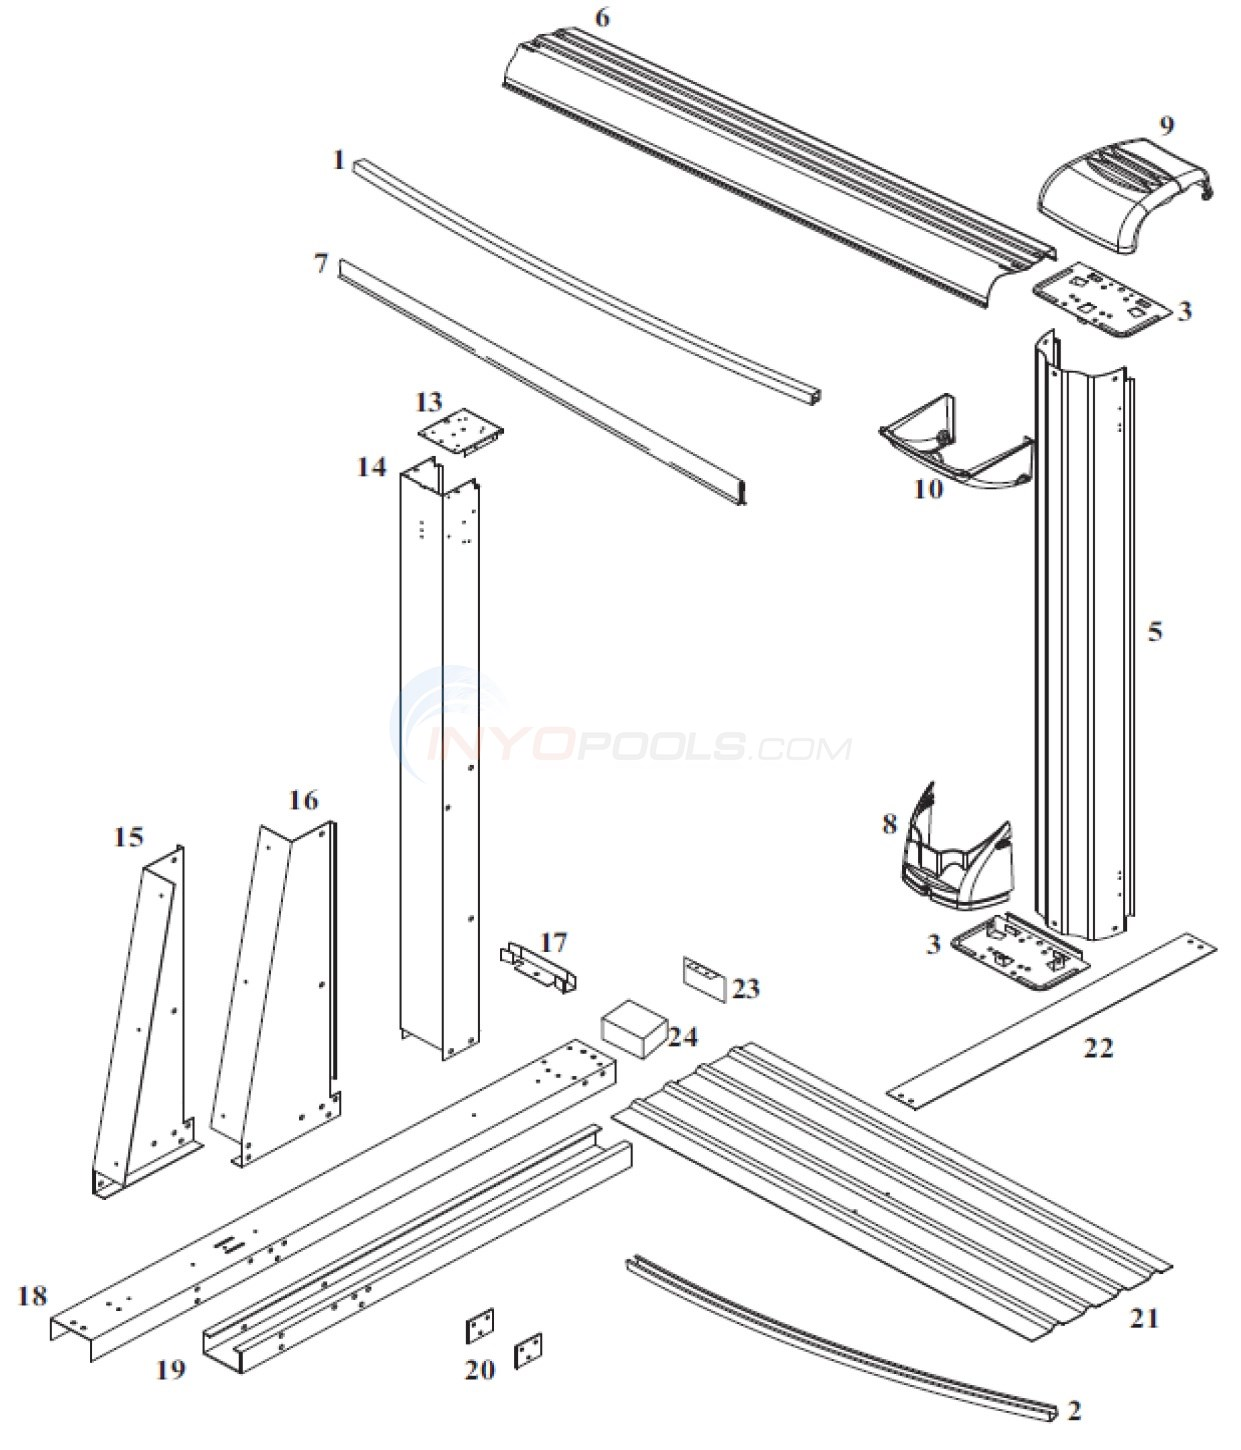 Cayman 12'x17' Oval (Steel Top Rail, Steel Upright) Diagram